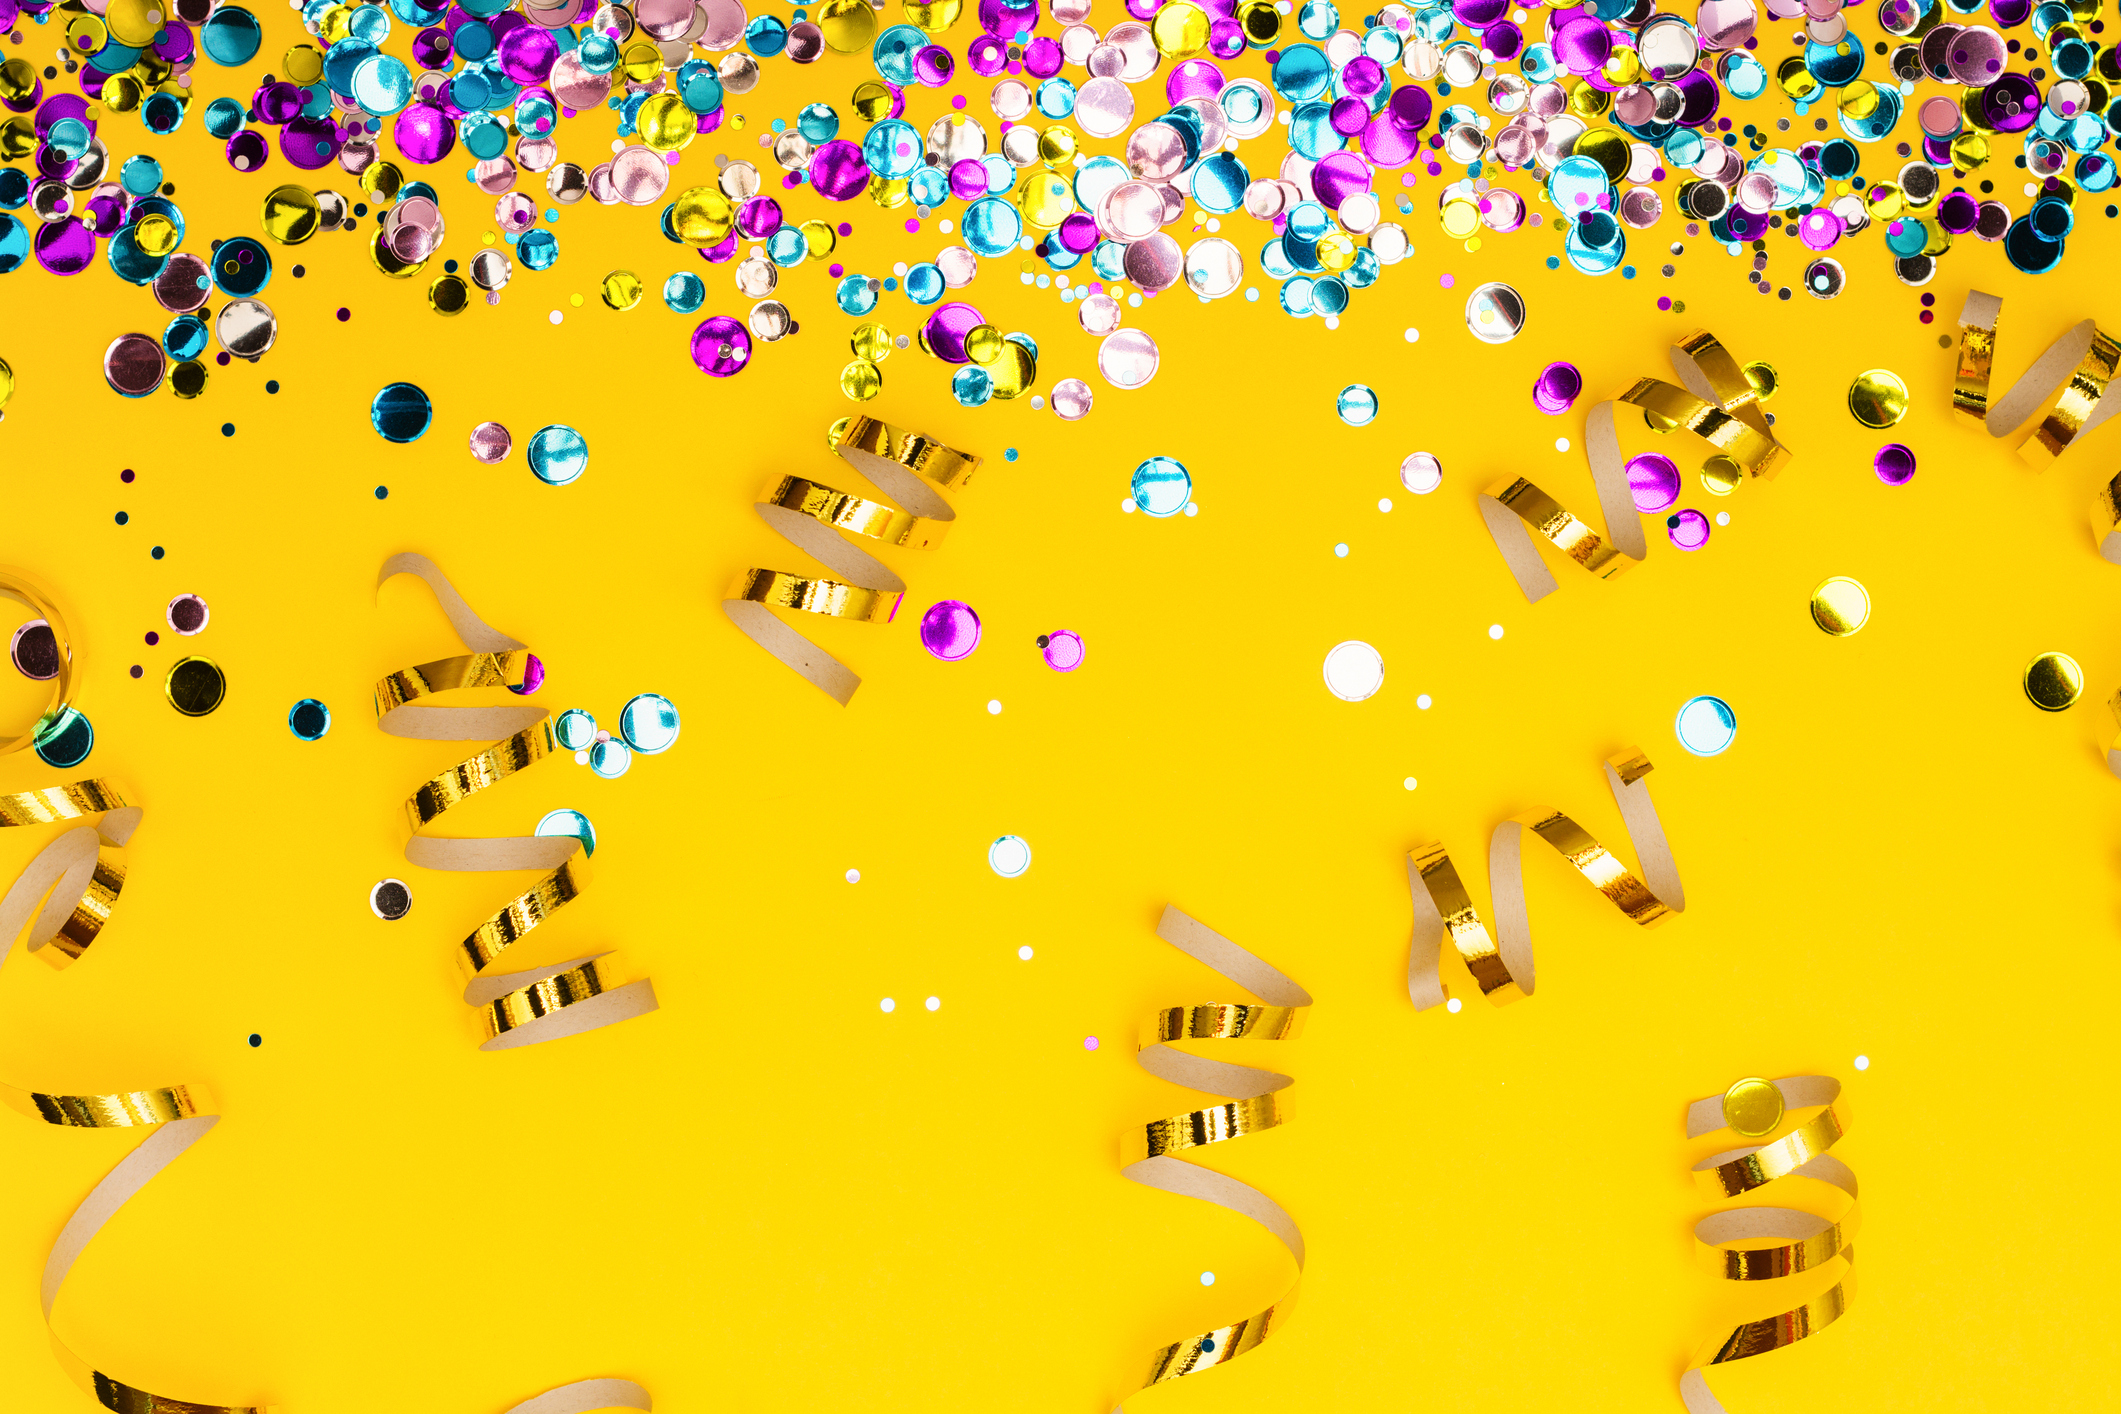 Colorful confetti and golden coiled streamers on yellow background. Festive party or carnival border. Copy space